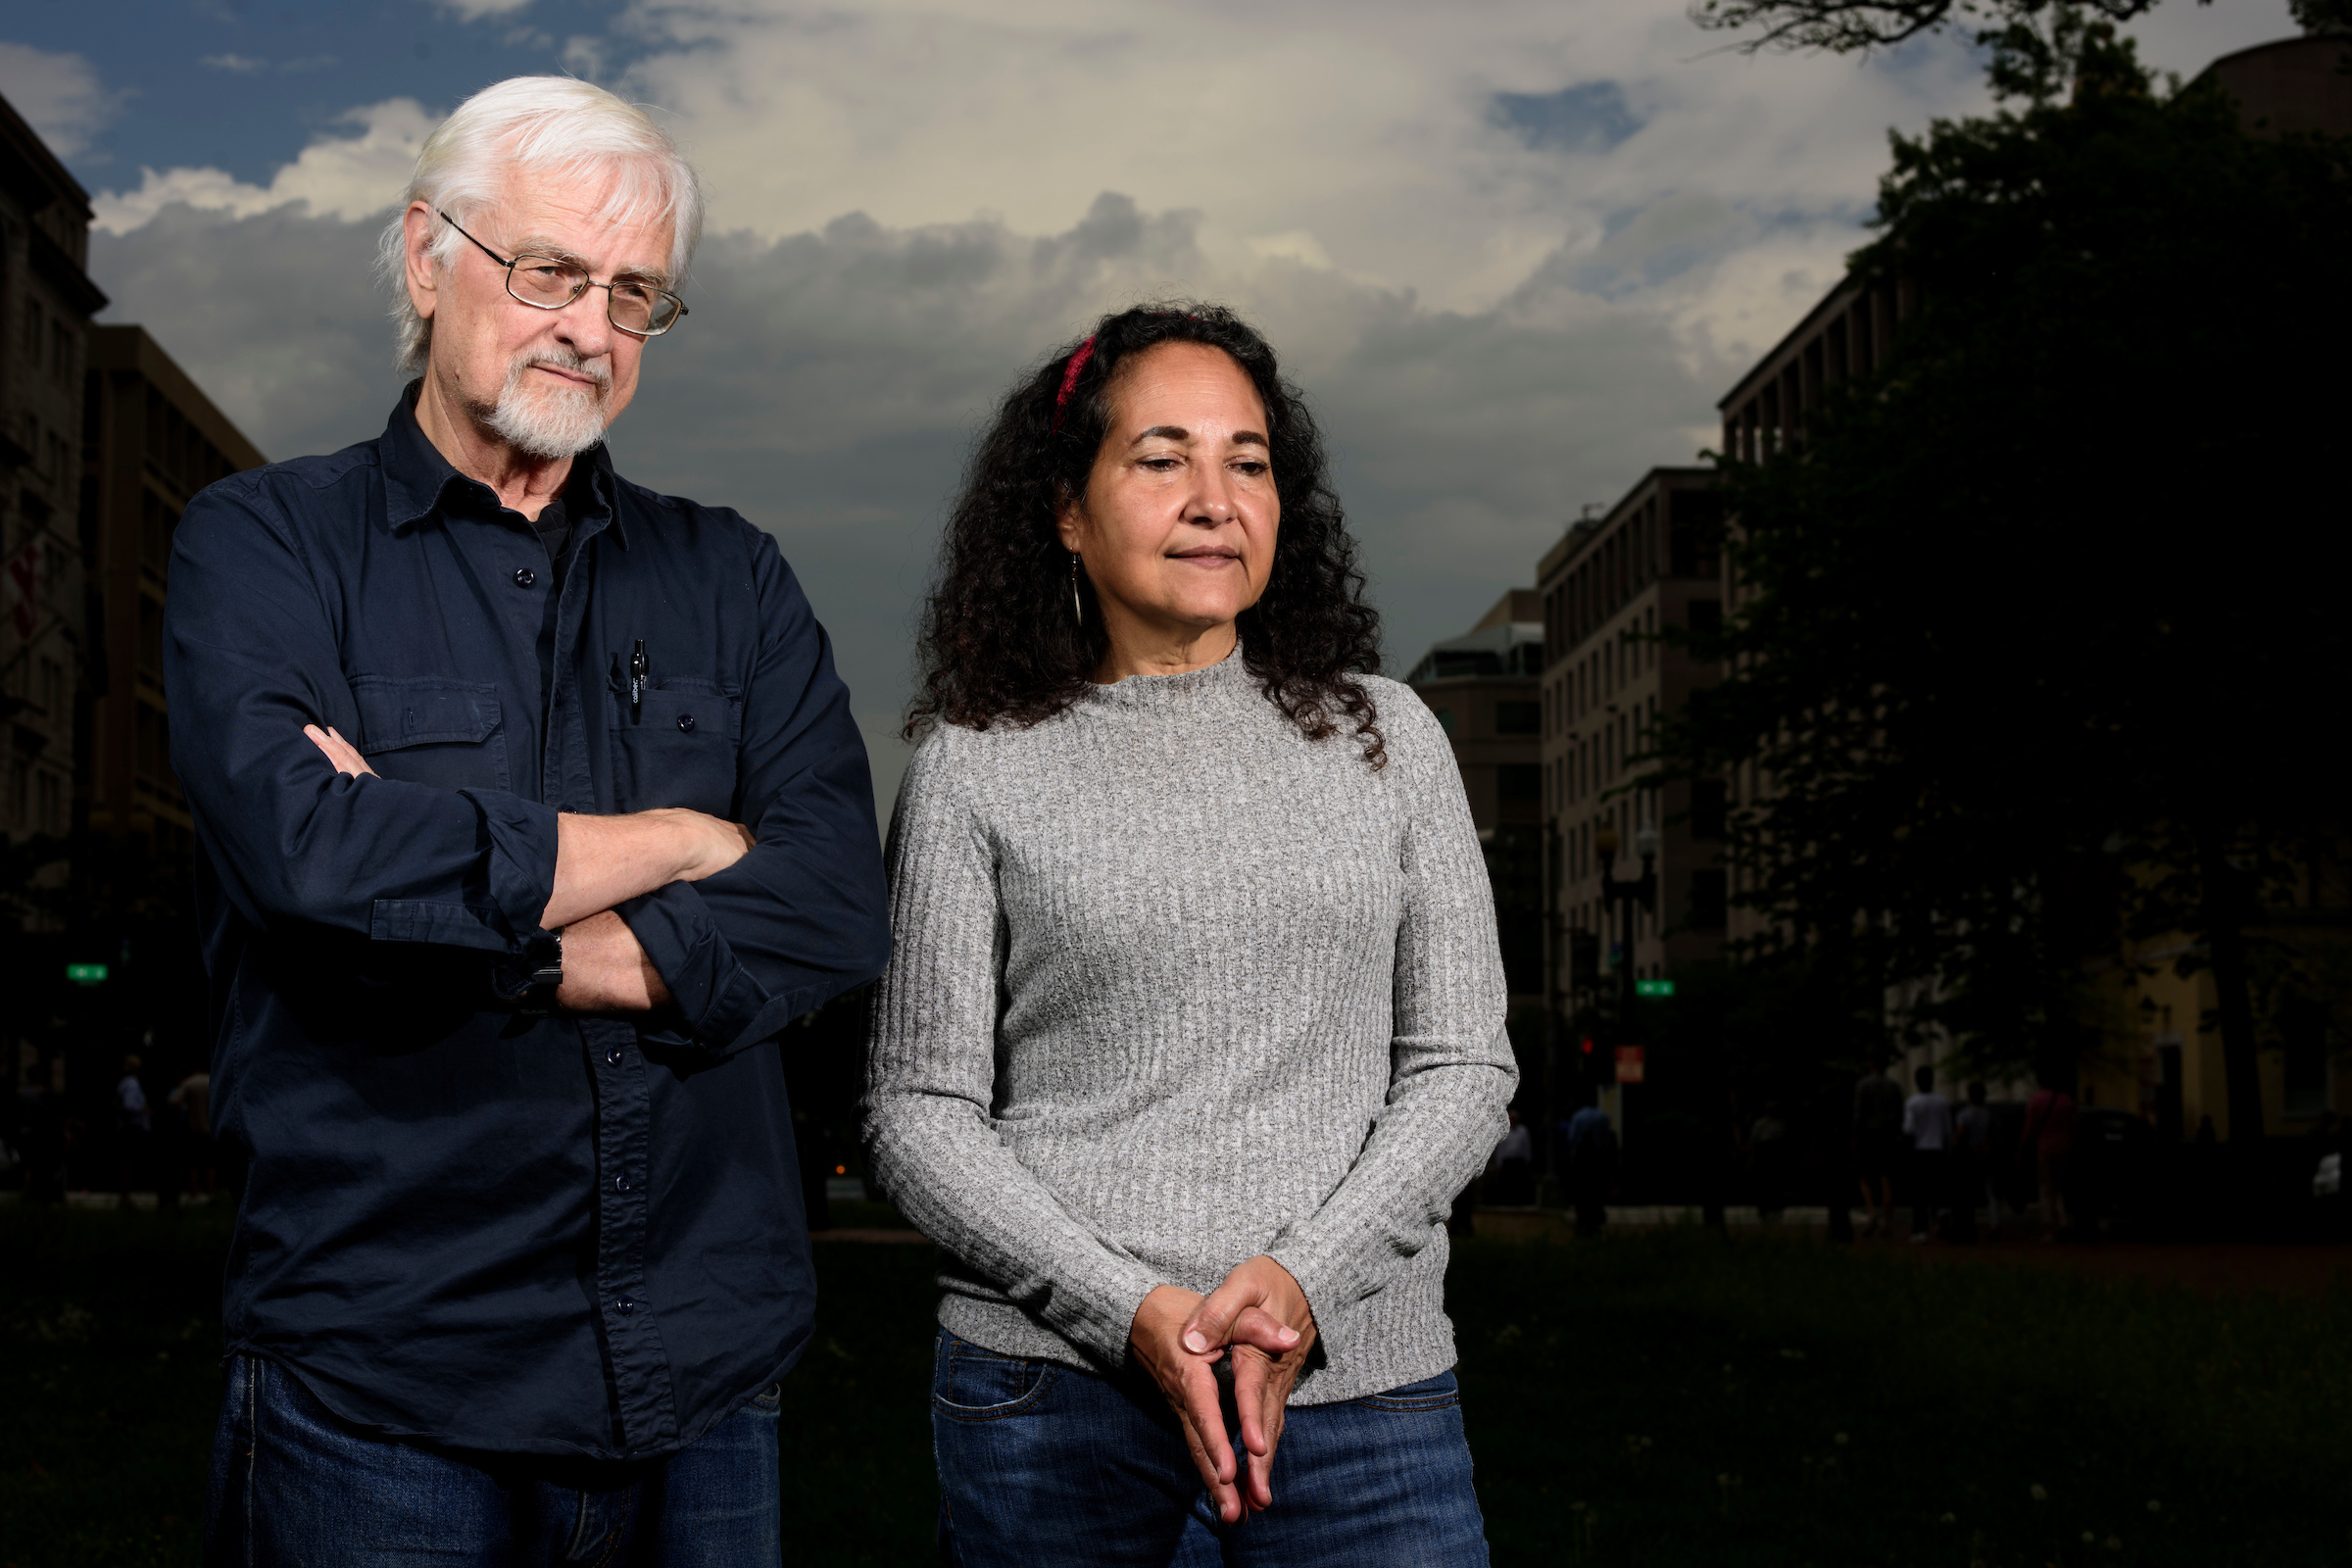 Washington, D.C. - April 21, 2017: John Vadermeer and Ivette Perfecto are both Ecologists at the University of Michigan. The married couple, photographed at Lafayette Square in Washington D.C. Friday April 21, 2017, are in Washington for the March for Science on Saturday.CREDIT: Matt Roth